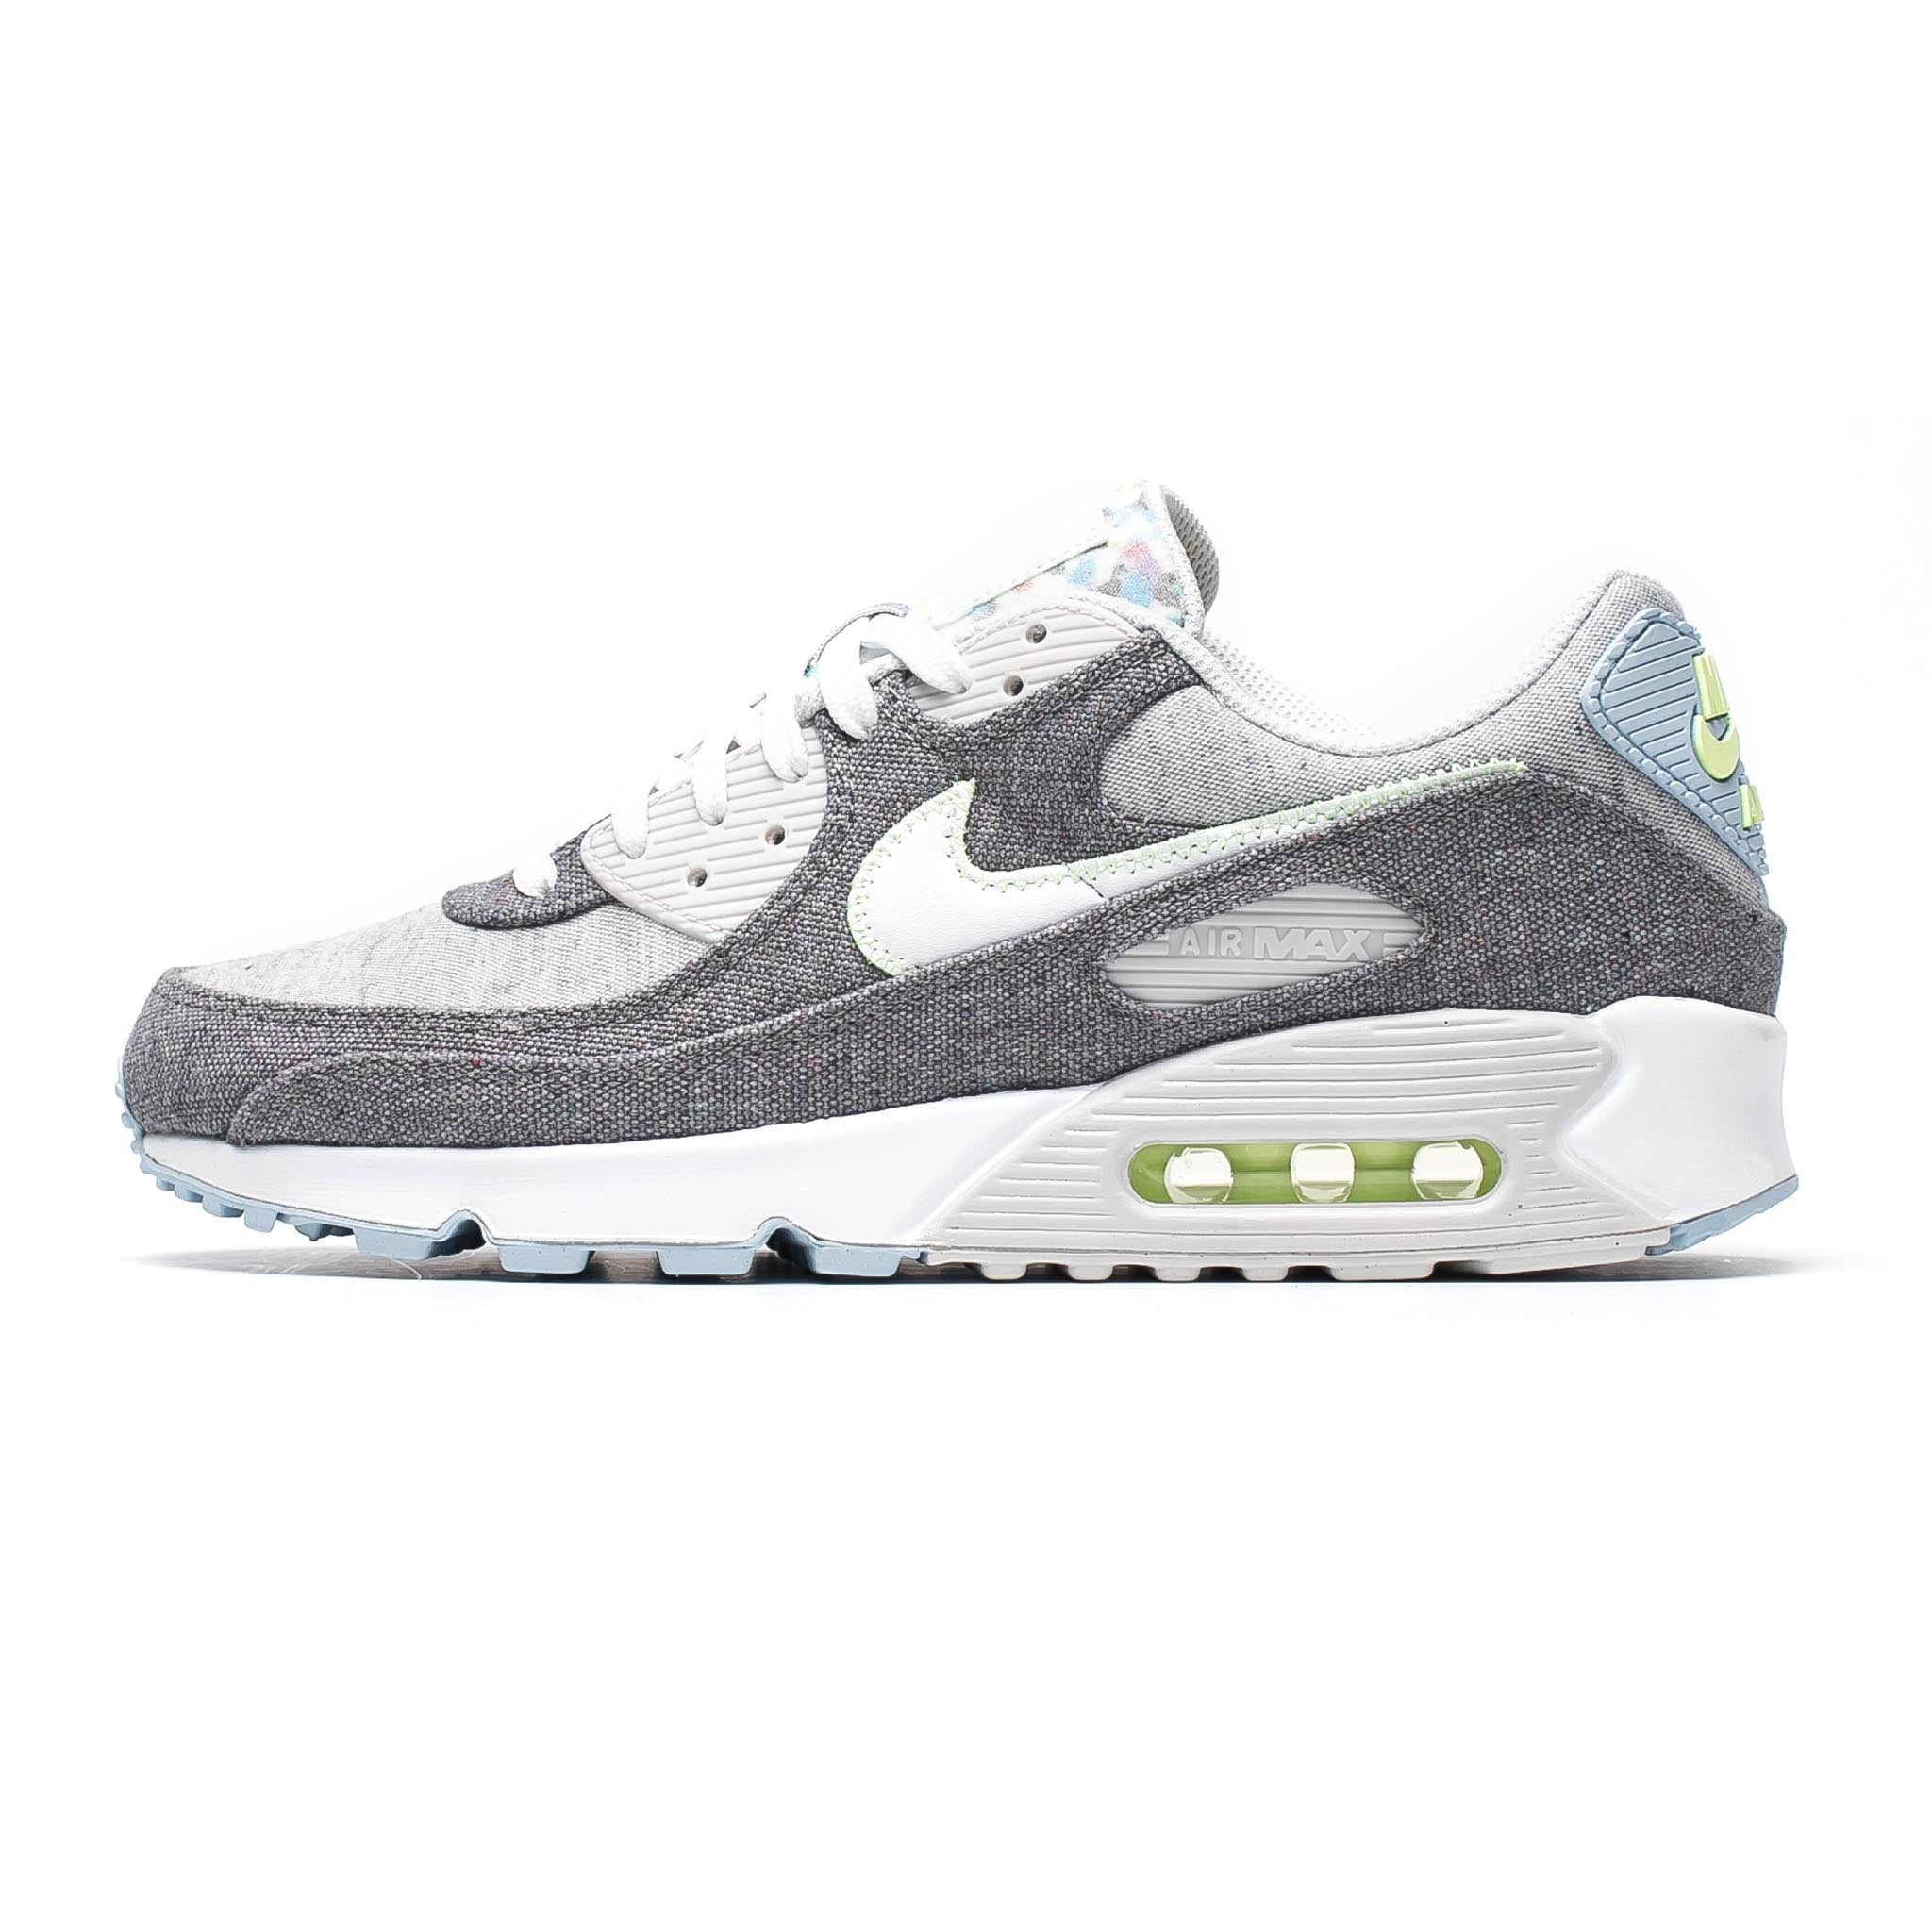 Nike Air Max 90 NRG 'Vast Grey'